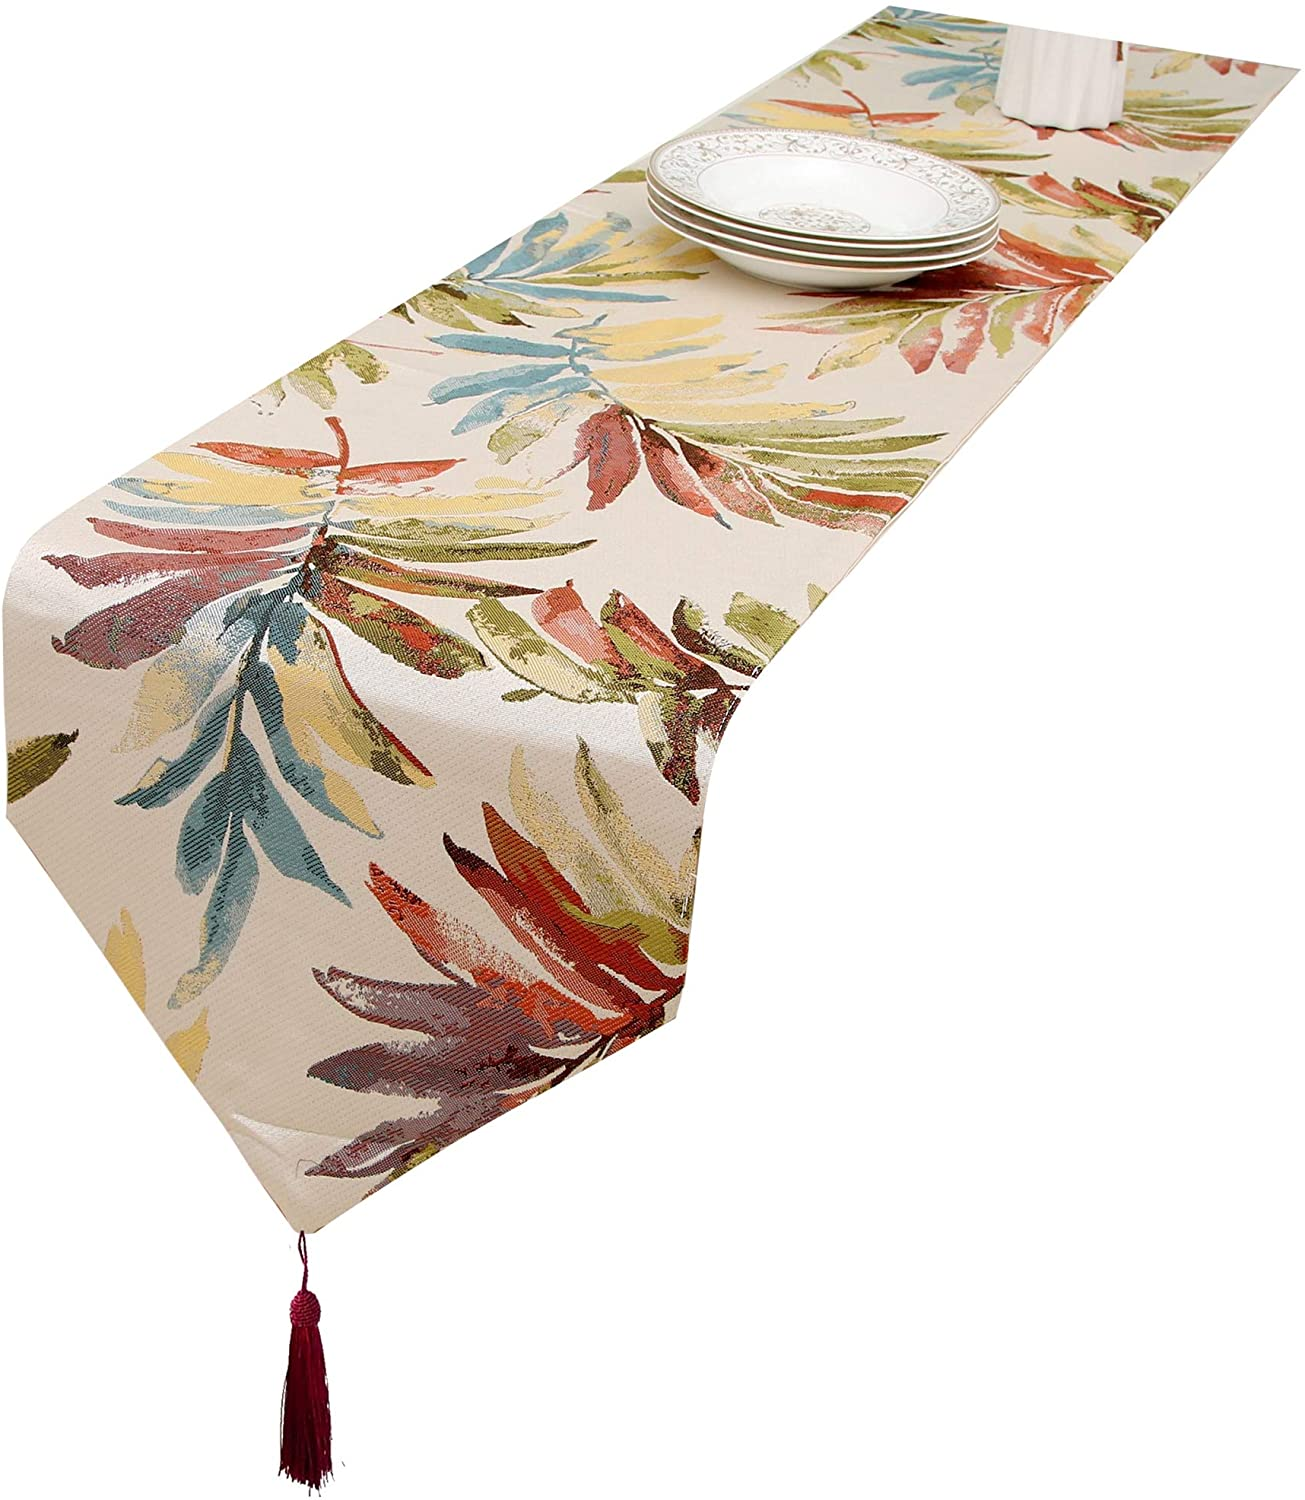 HoliSelear Multi-Size Colorful Leaf Table Runner Fall 13 x 48 Inch for Coffee Farmhouse Long Side Desk Tall Kitchen Tea/Coffee Table Dining Room Decoration Party Dresser